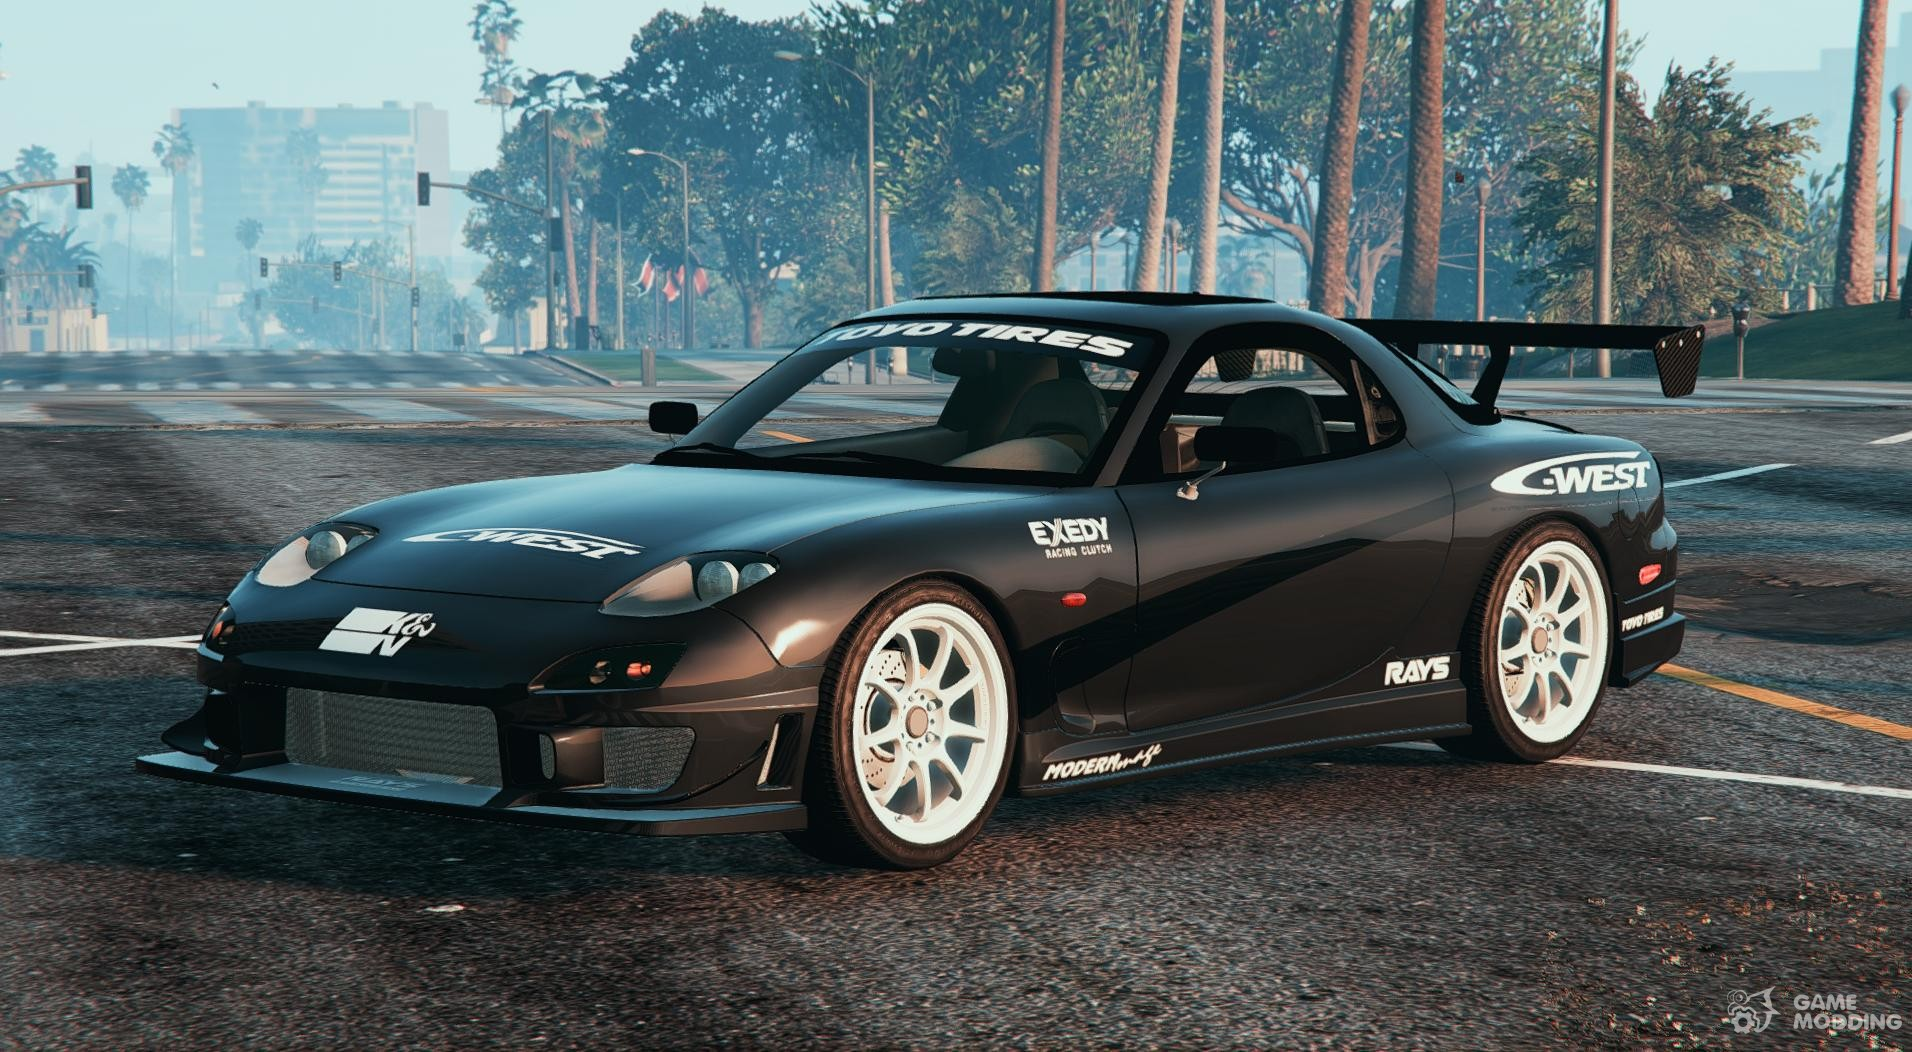 Mazda RX7 C-West for GTA 5